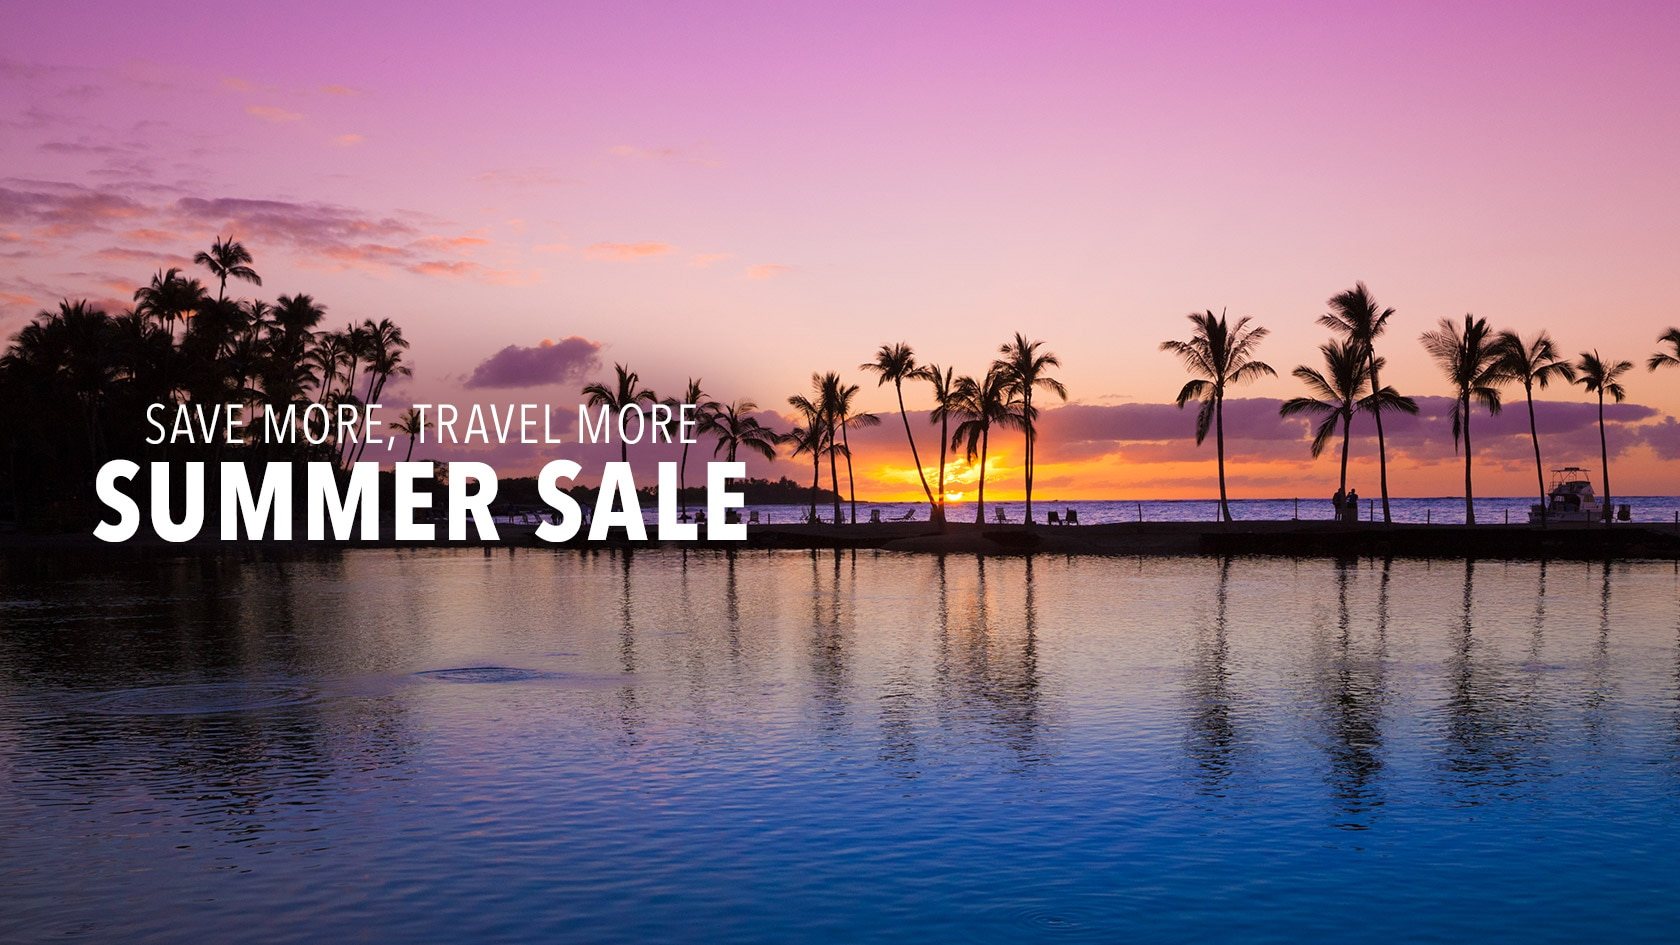 Orbitz.com: Summer Sale: Up to 30% off Select Hotels